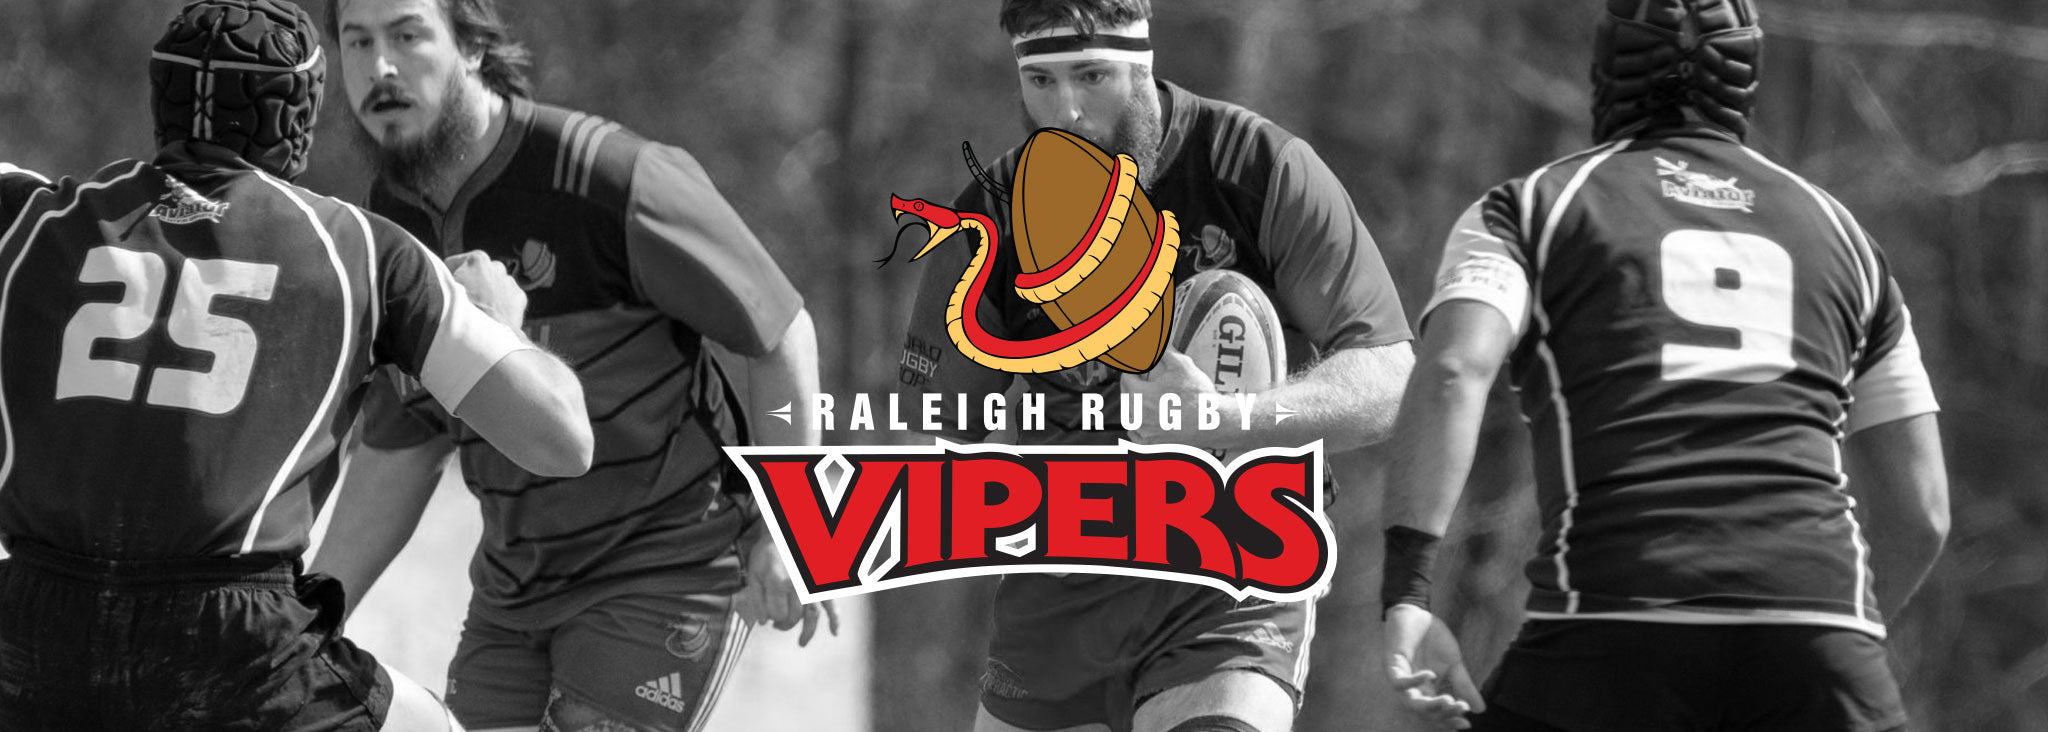 Raleigh Rugby Vipers